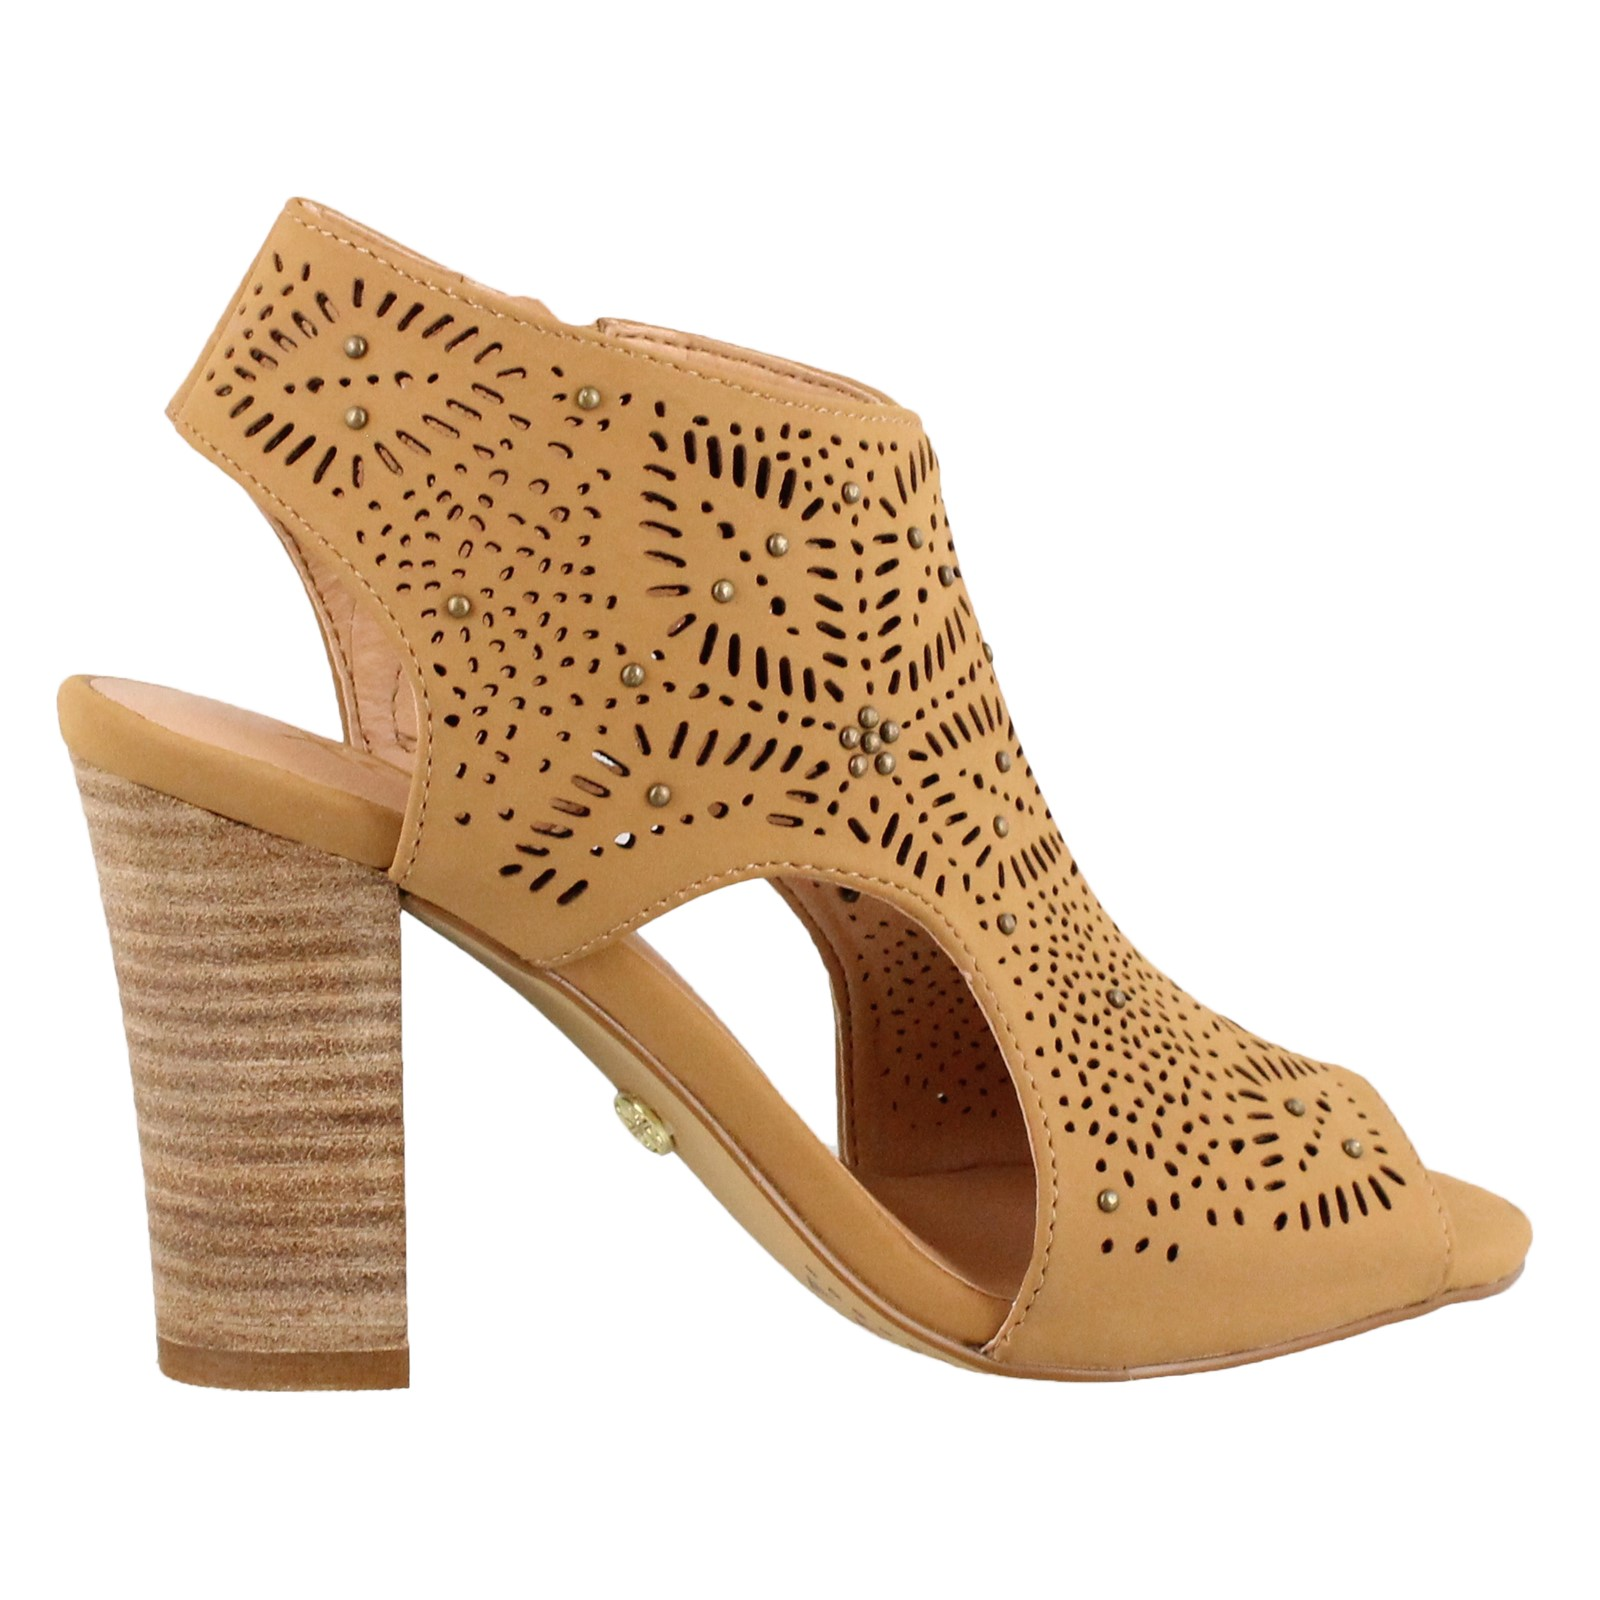 Women's XOXO, Betta High Heel Sandal